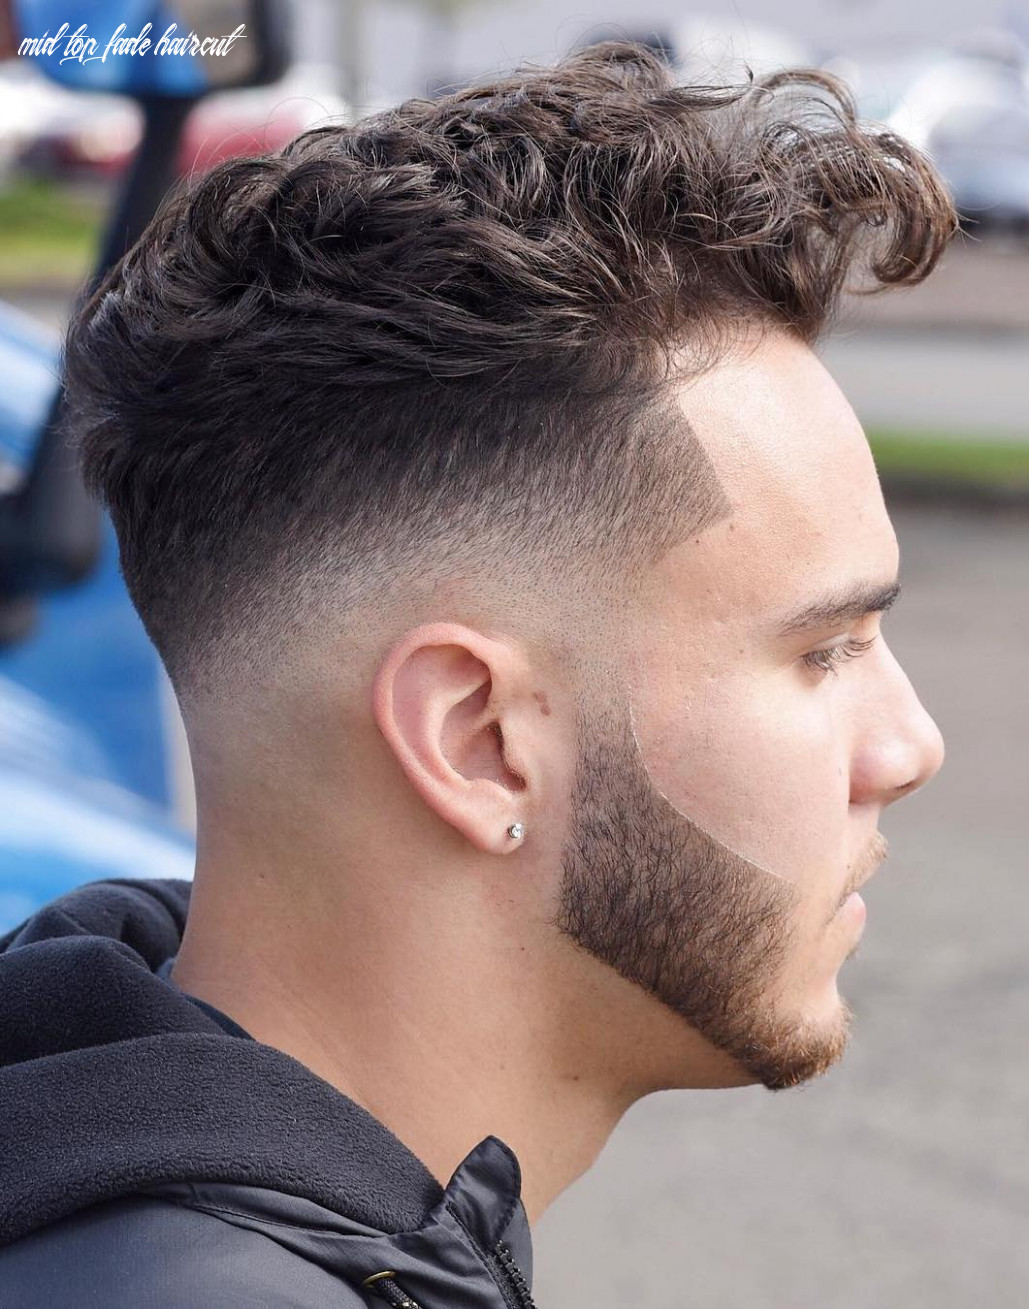 9 the most fashionable mid fade haircuts for men mid top fade haircut